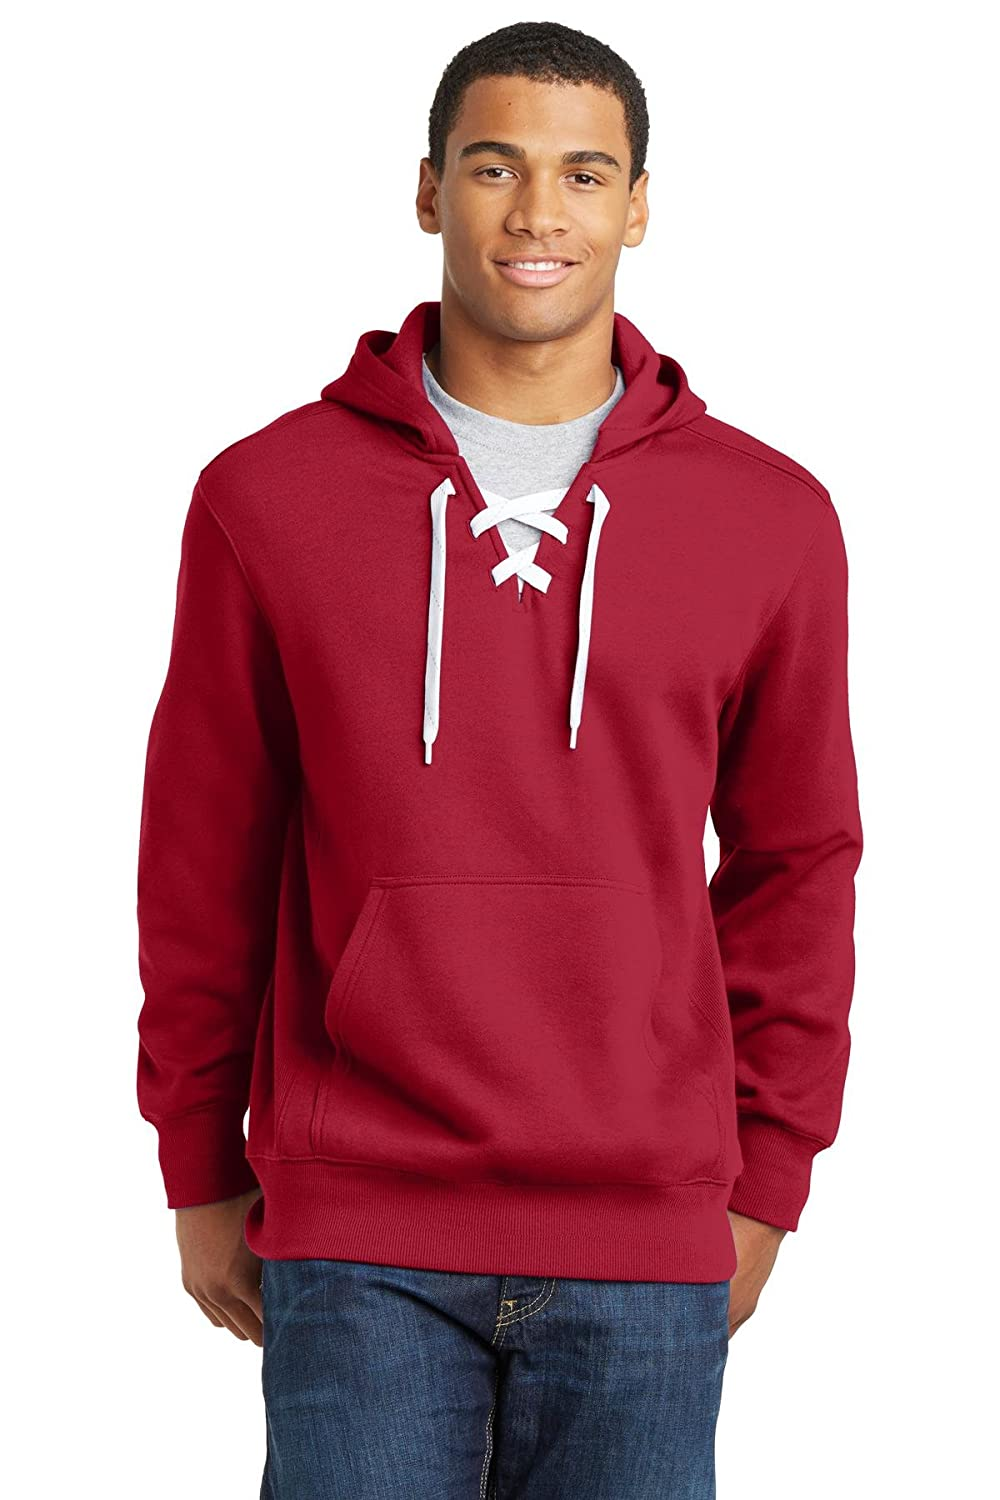 Joe's USA Mens Lace up Pullover Hooded Sweatshirts in Sizes XS-4XL